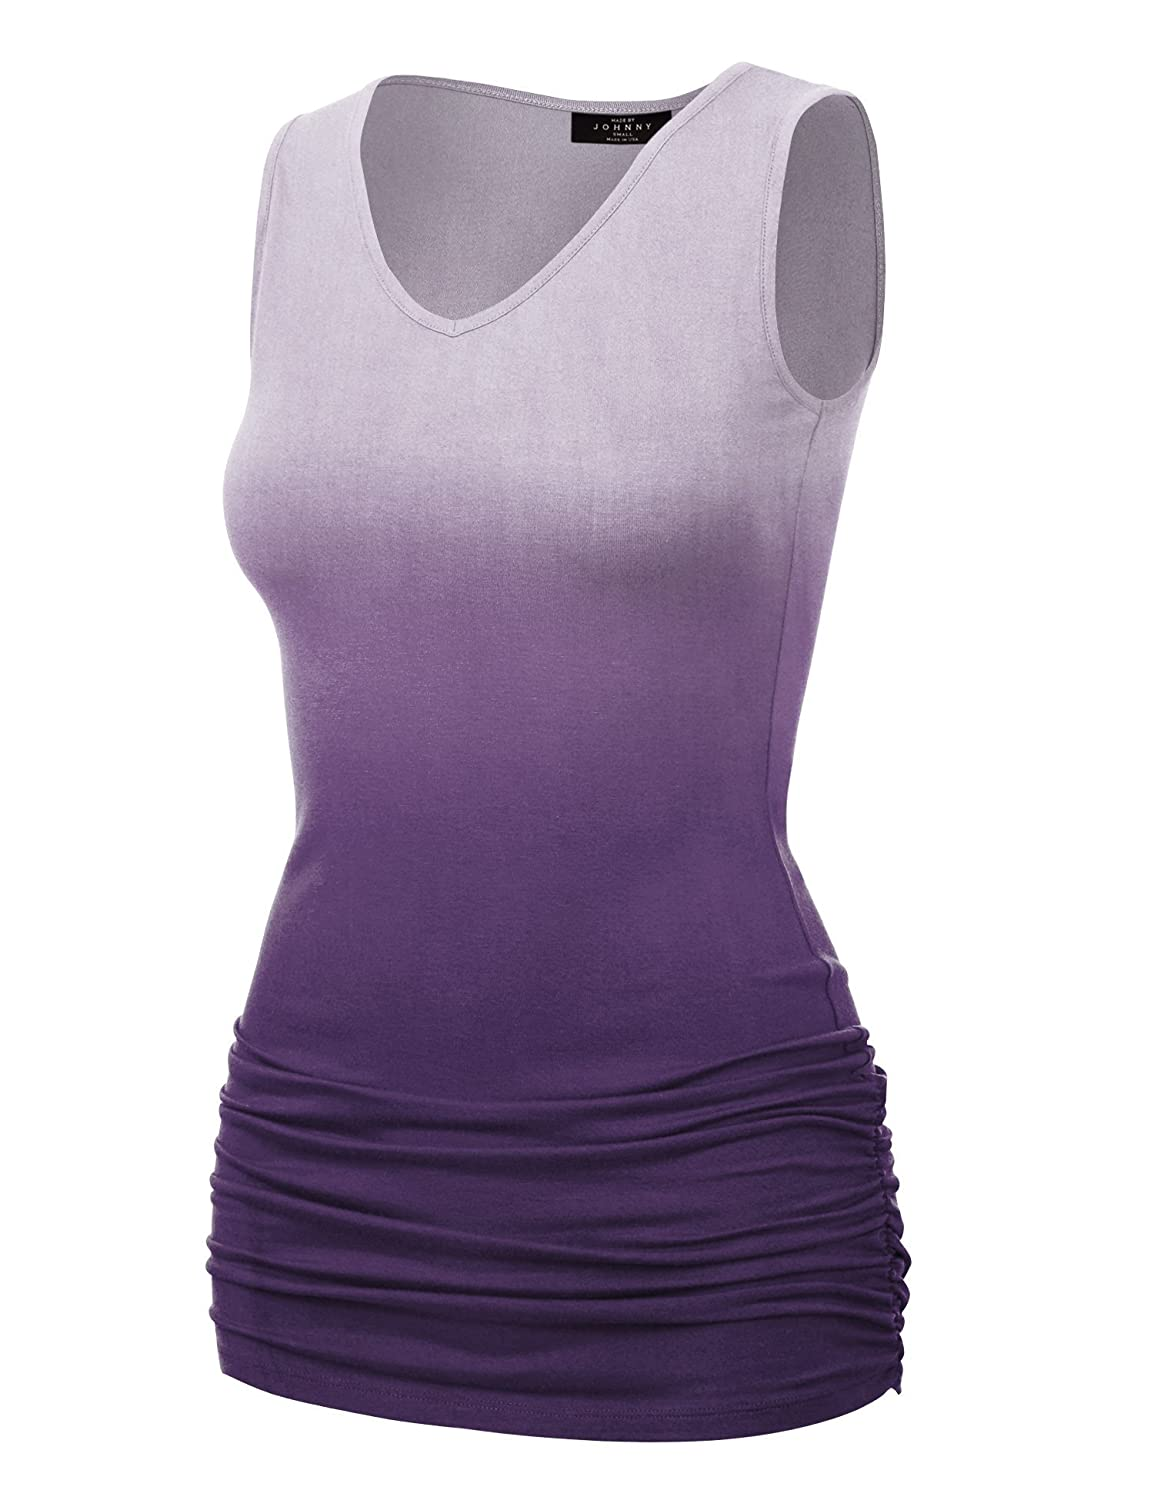 c92b2170e7f MBJ Womens Sleeveless Stretch Comfy Tank Top - Made in USA MBJWT879 ...